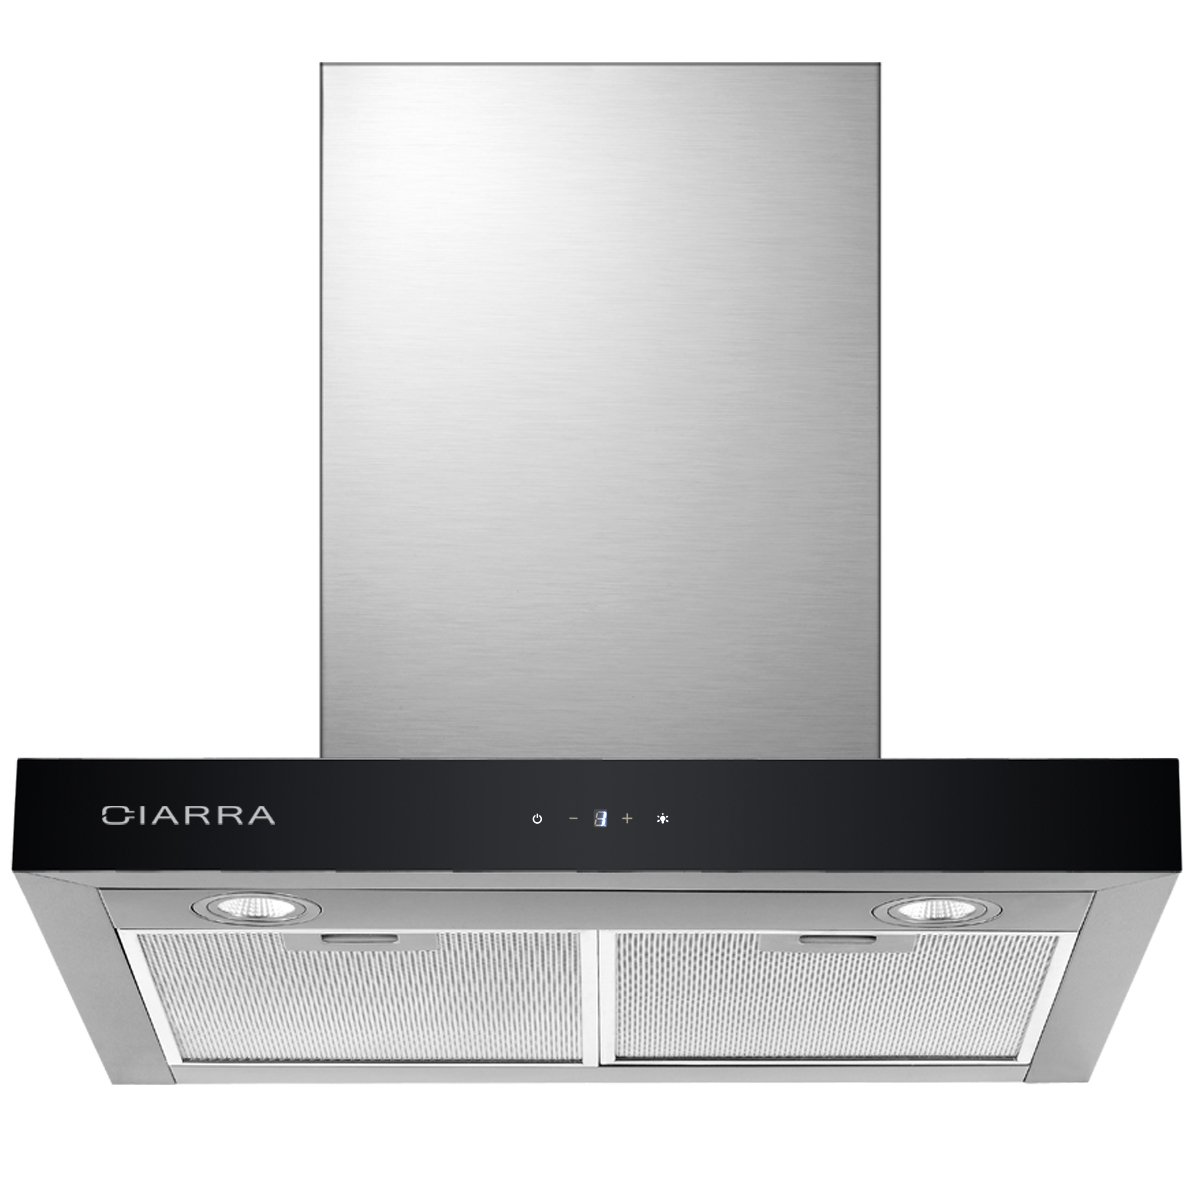 CIARRA Touch Control Chimney Cooker Hood 60 cm Wall Mounted Stove Range Hood Recirculating Kitchen Stainless Steel Extractor Fan (Silver) [Energy Class C]